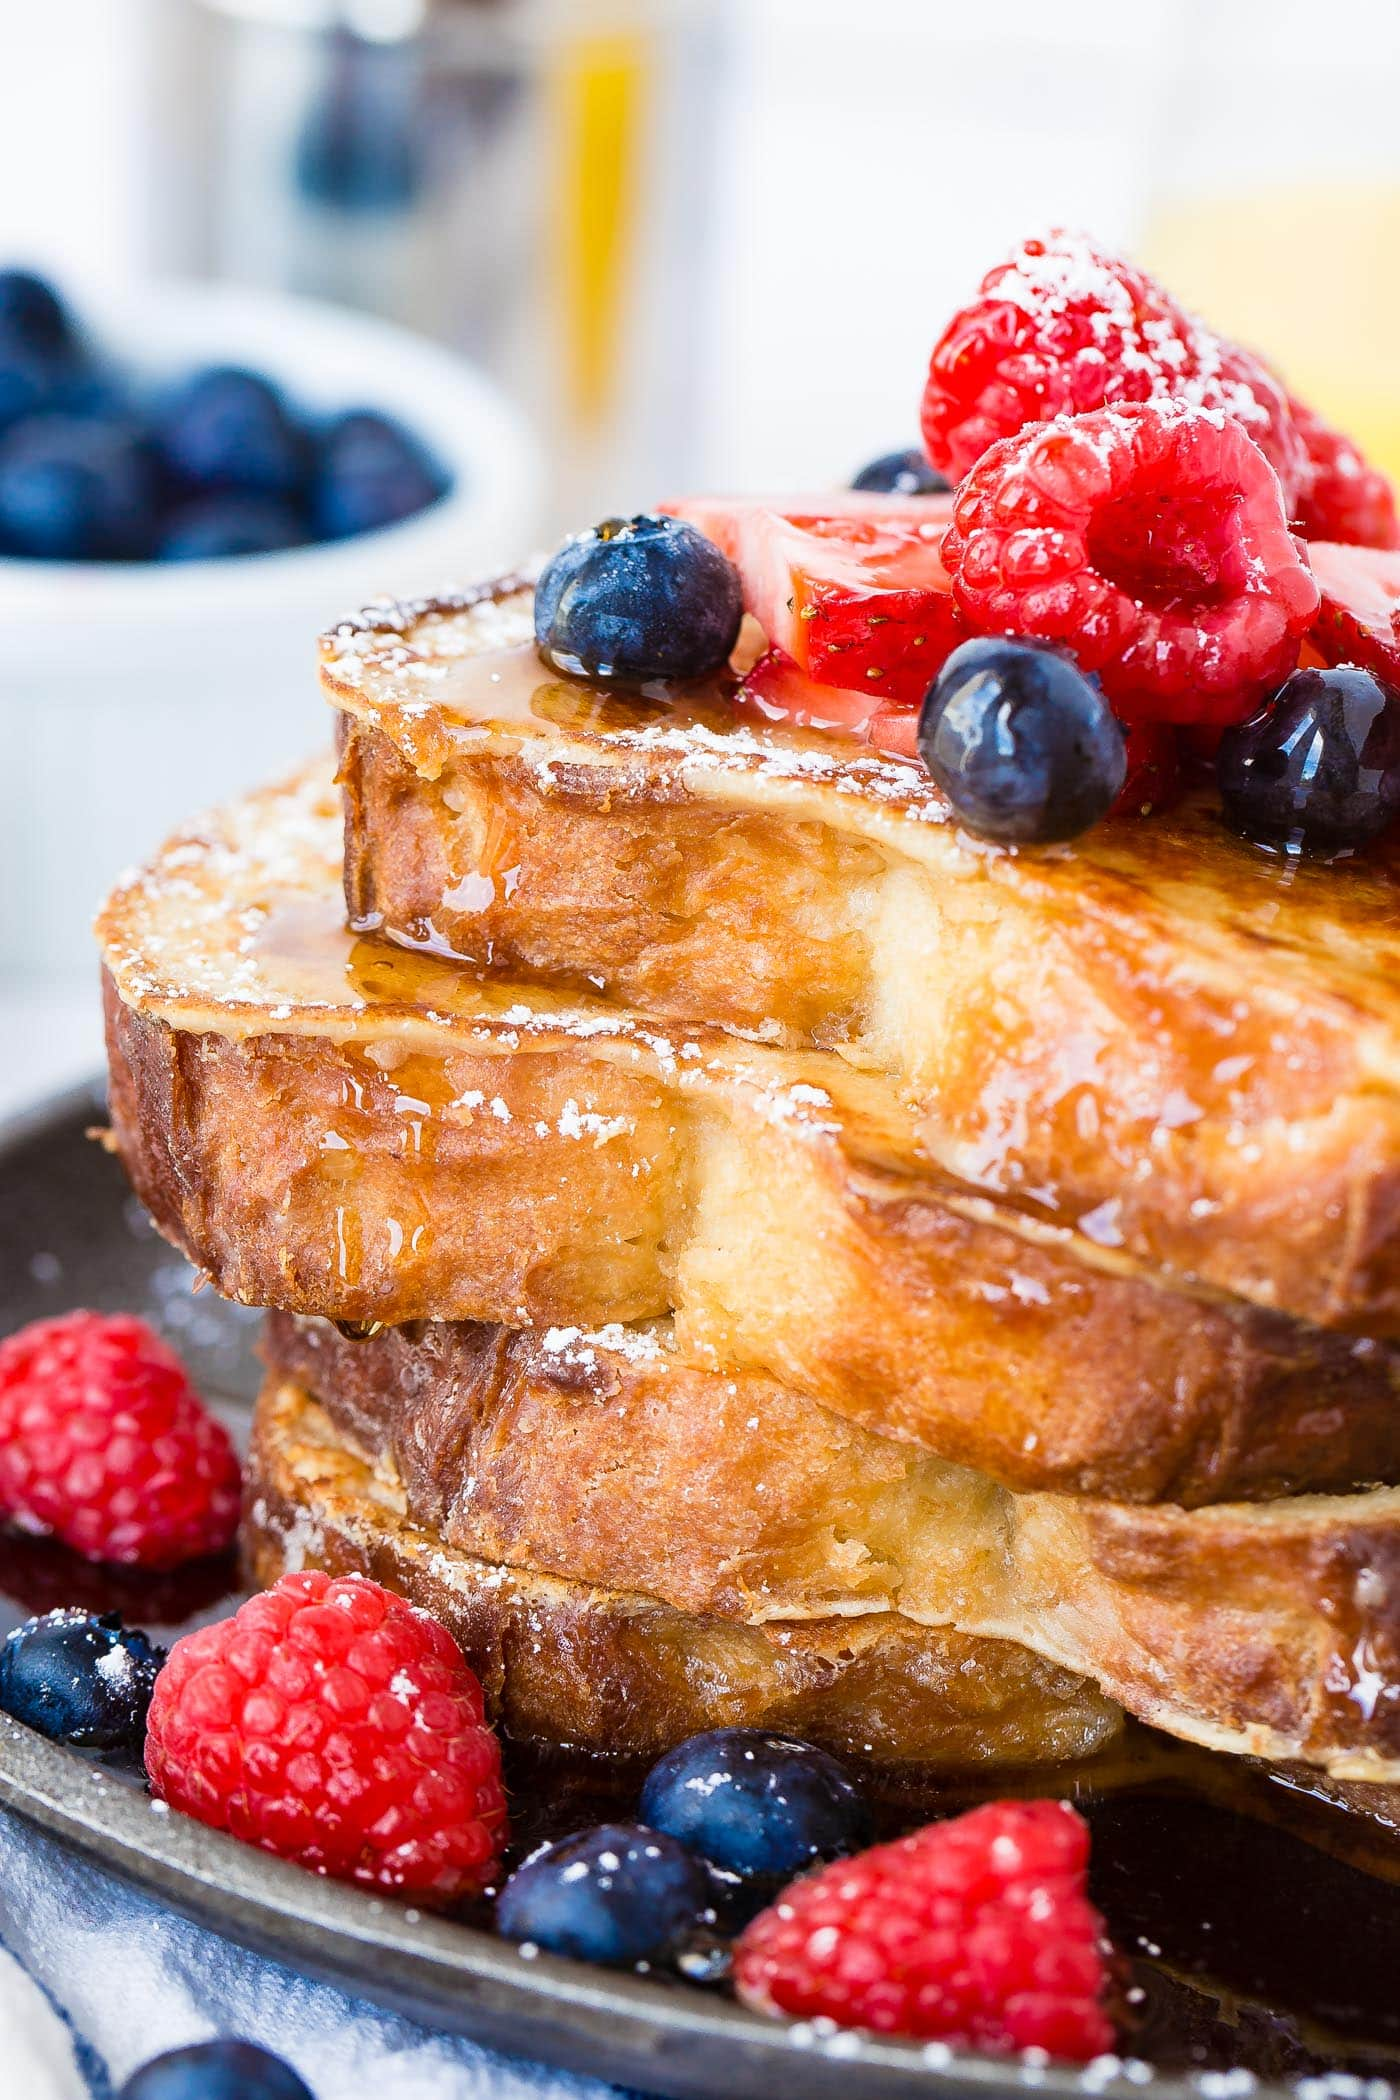 A photo of a stack of 4 perfectly made french toast slices dripping with syrup and fresh berries. How to Make French Toast